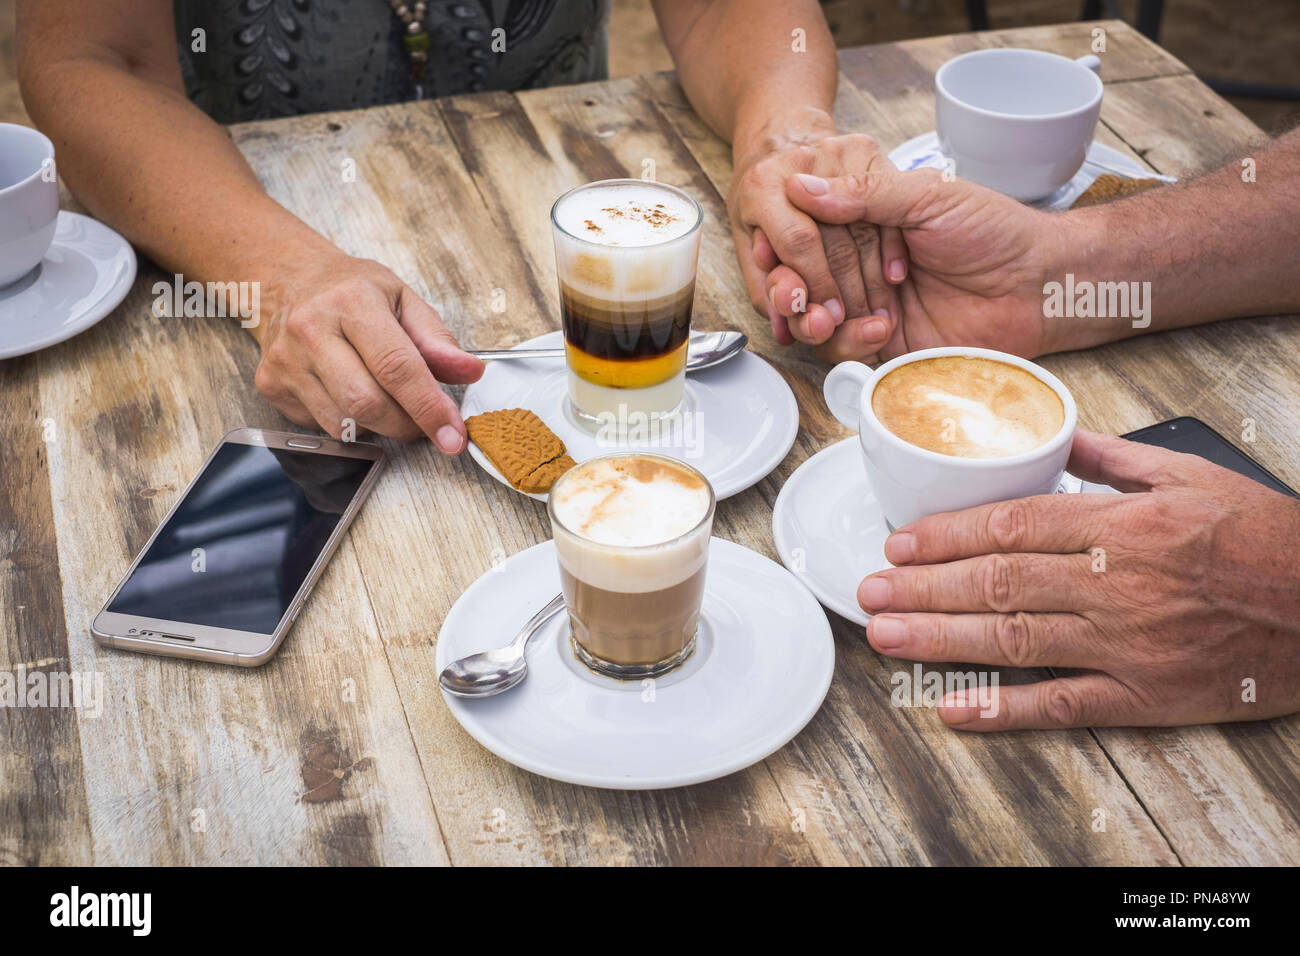 People drinking coffee and cappuccino at the bar over a wooden table with drinks and mobile phone technology. Socializing and love conept for adult ma - Stock Image